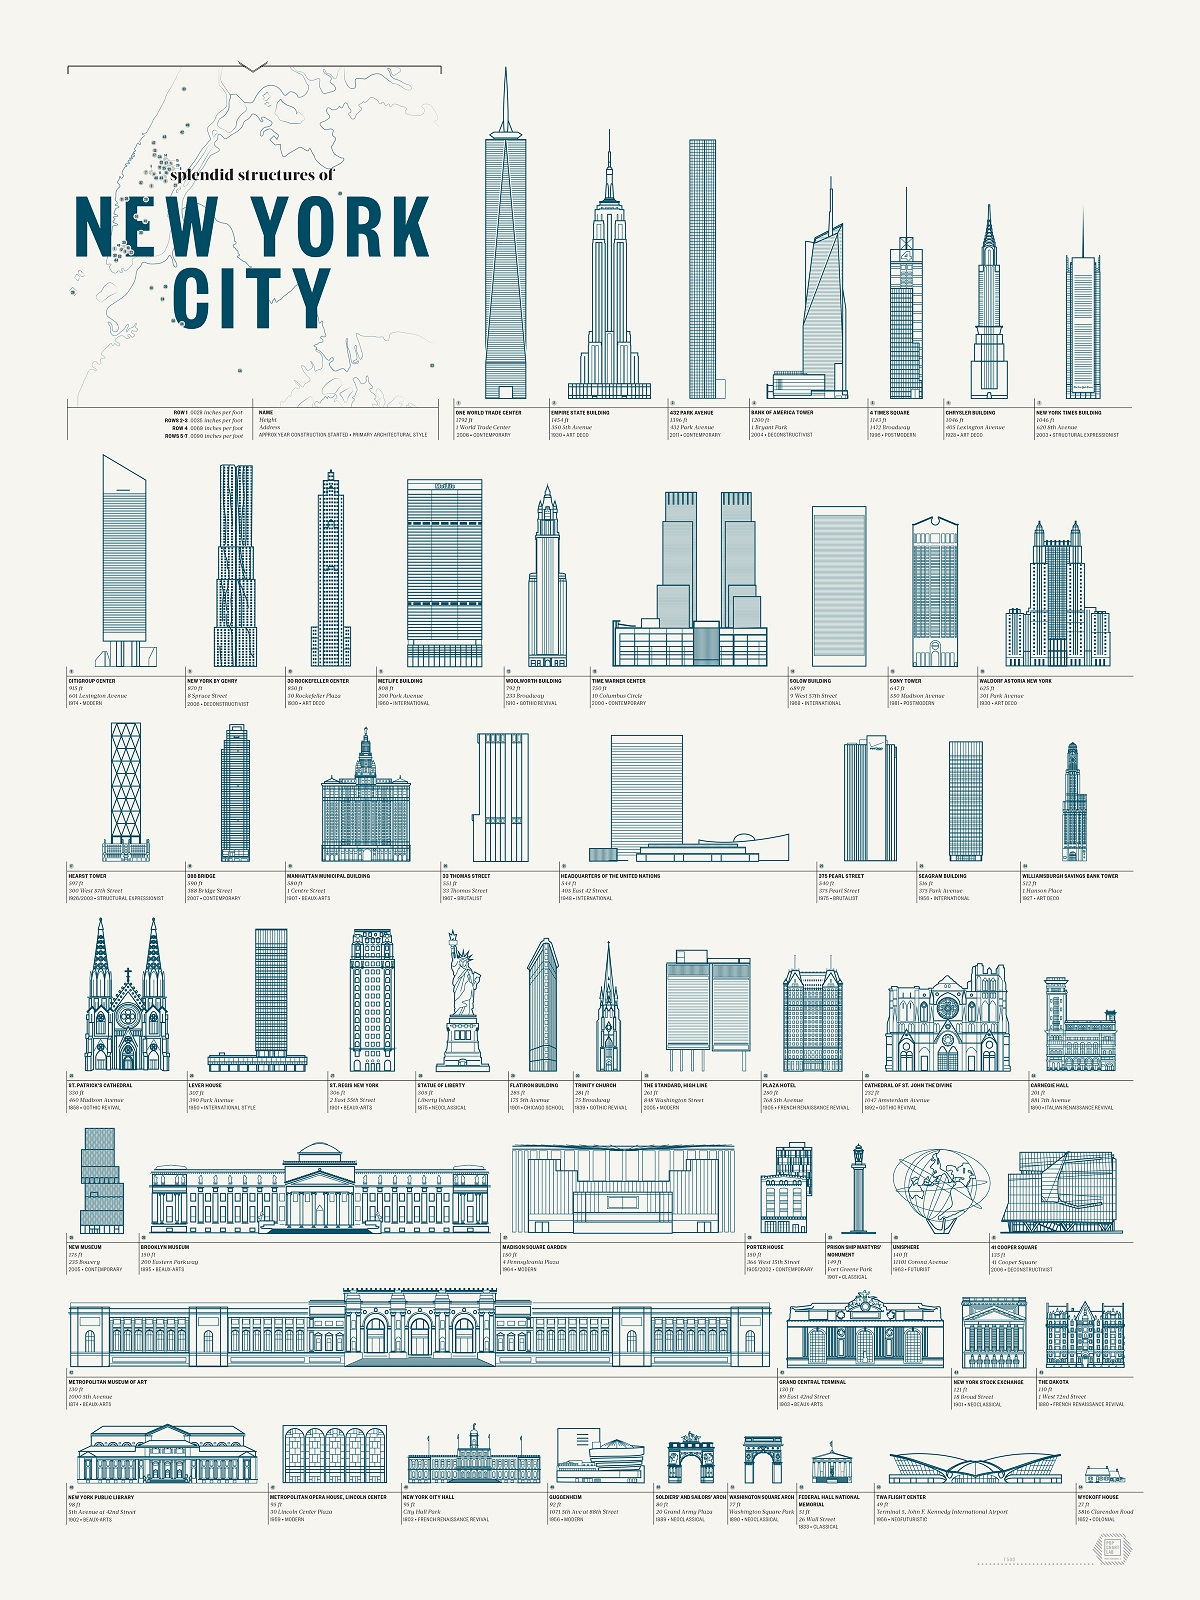 Pop Chart Lab, Splendid Structures of NYC, The Schematic of Structures